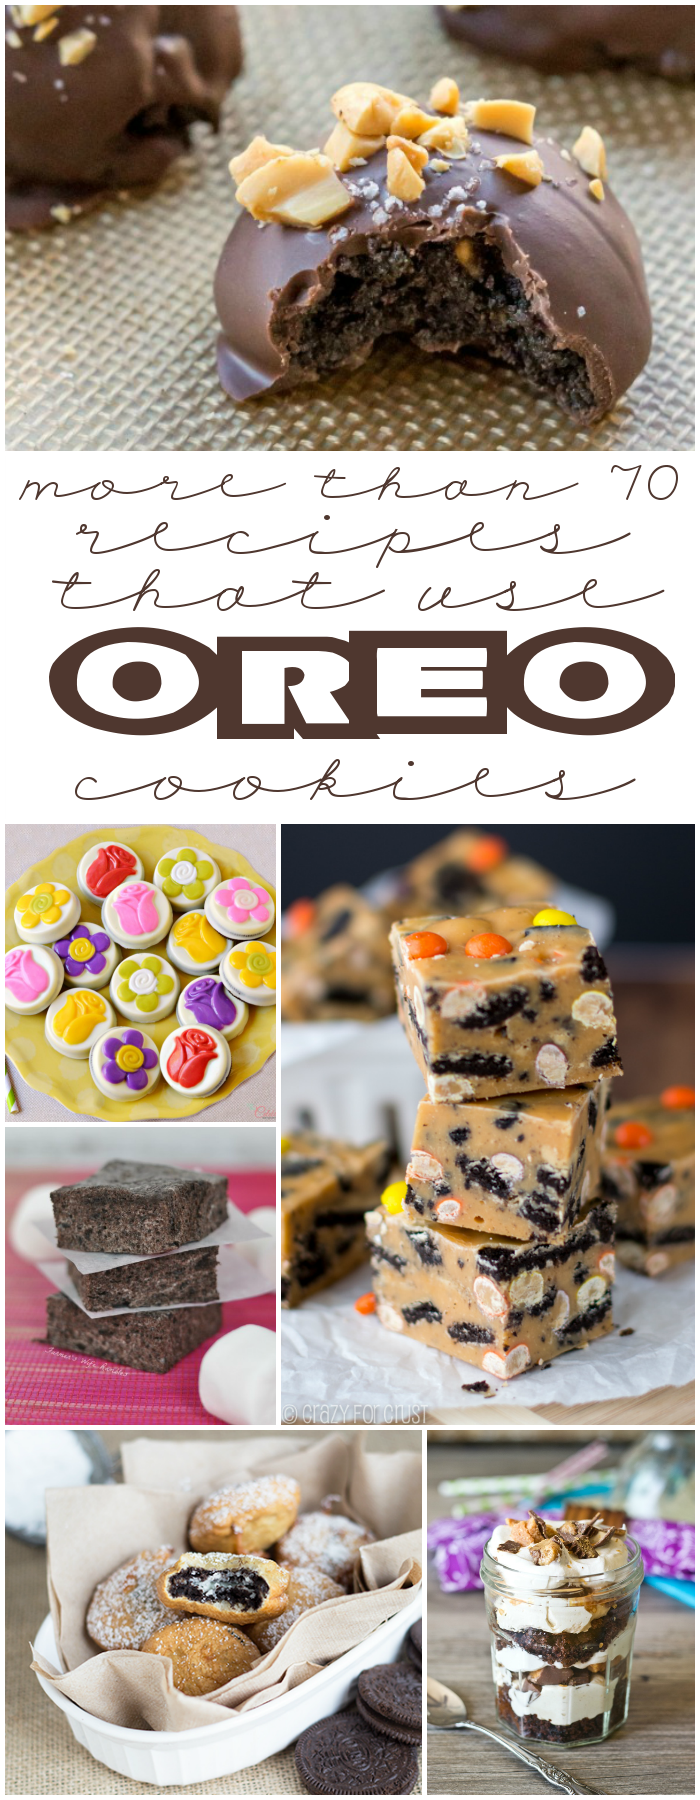 More than 70 recipes that use Oreo cookies!